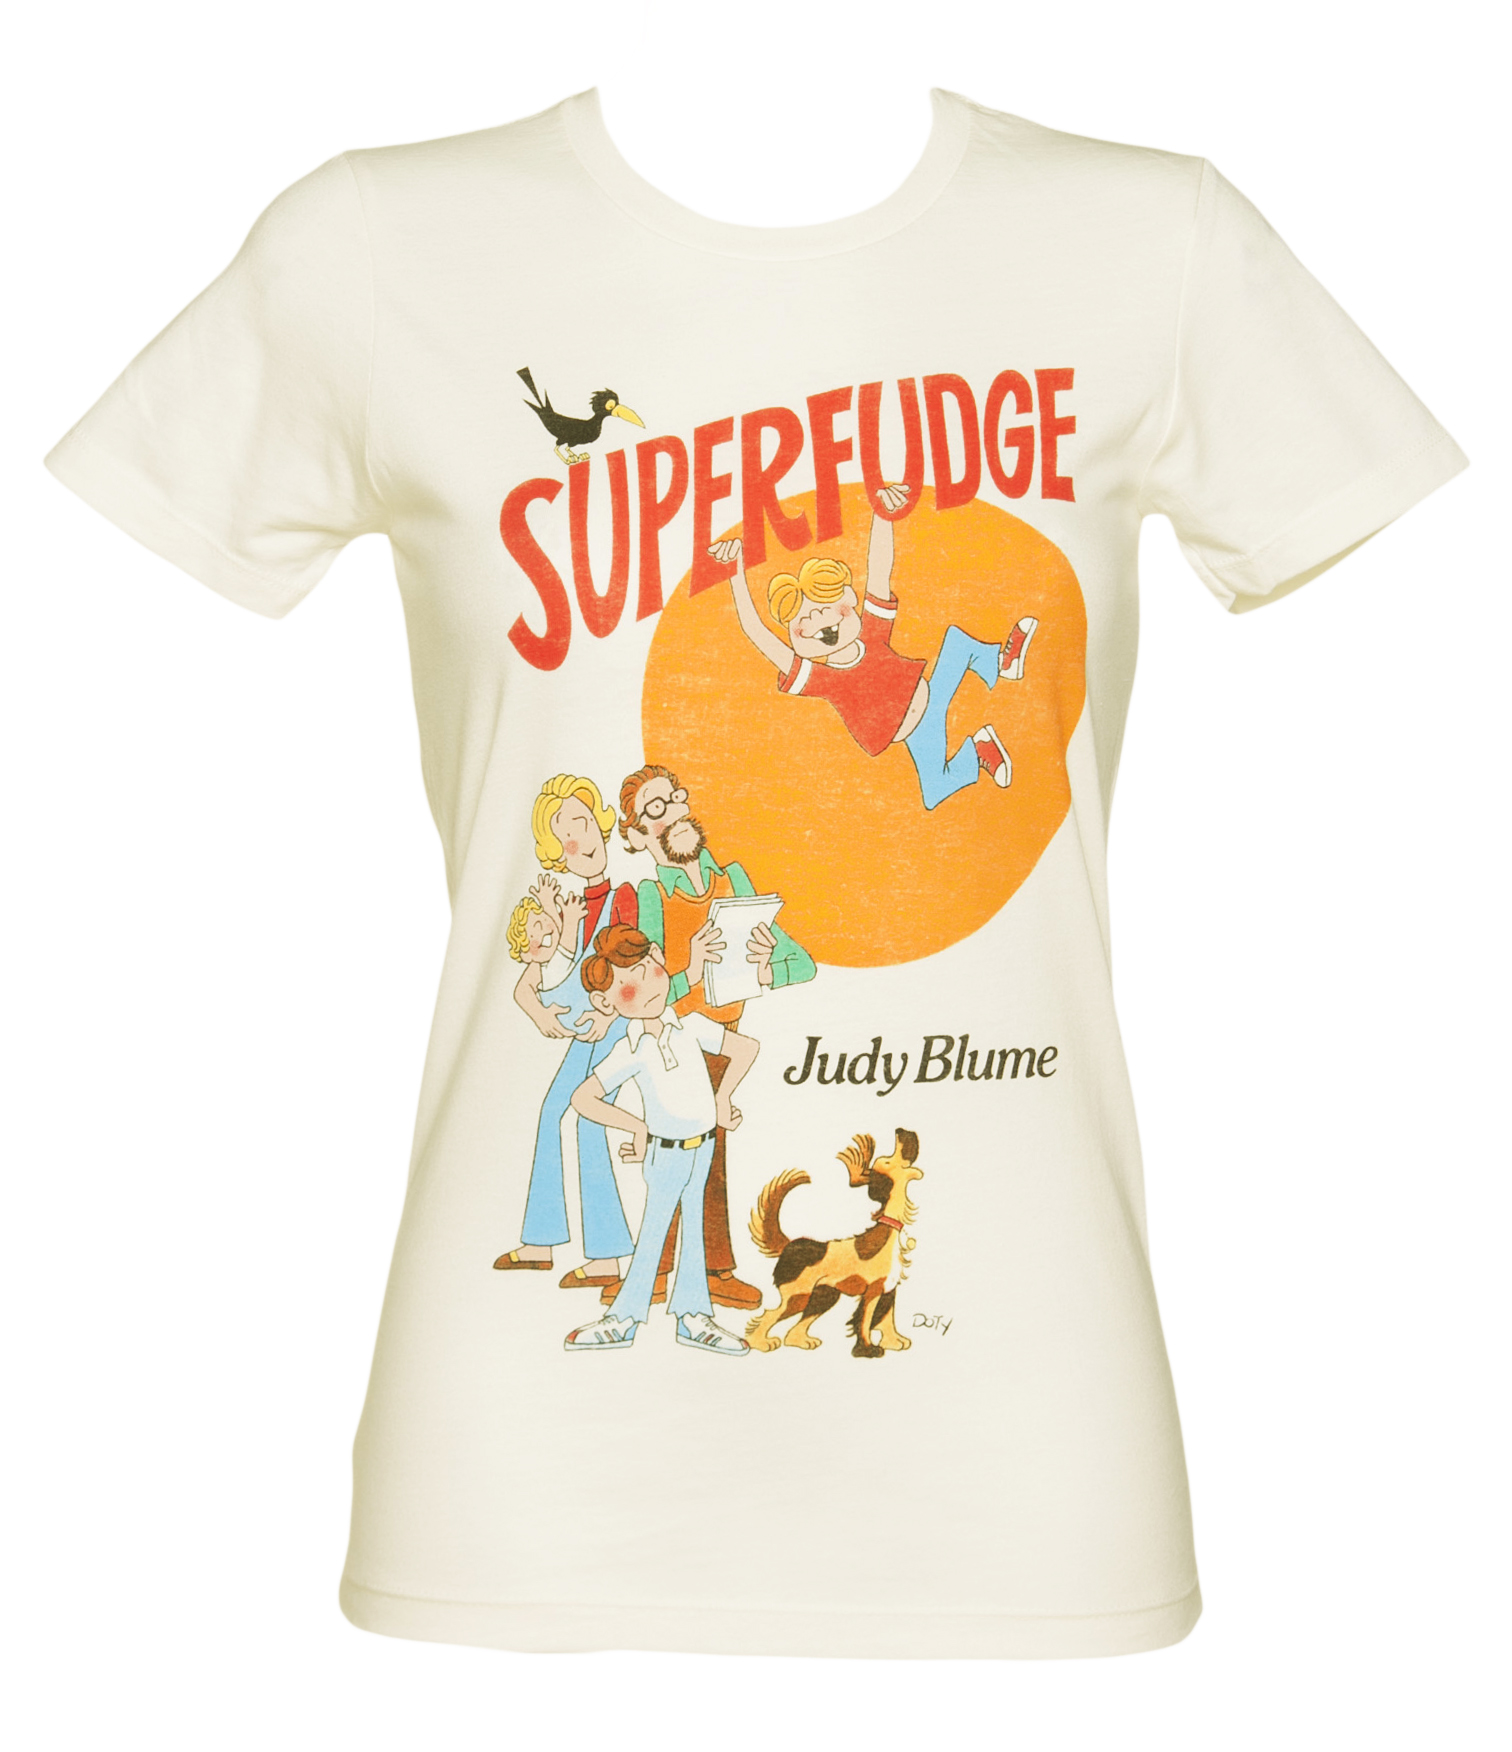 Ladies Ecru Superfudge By Judy Blume Book Cover